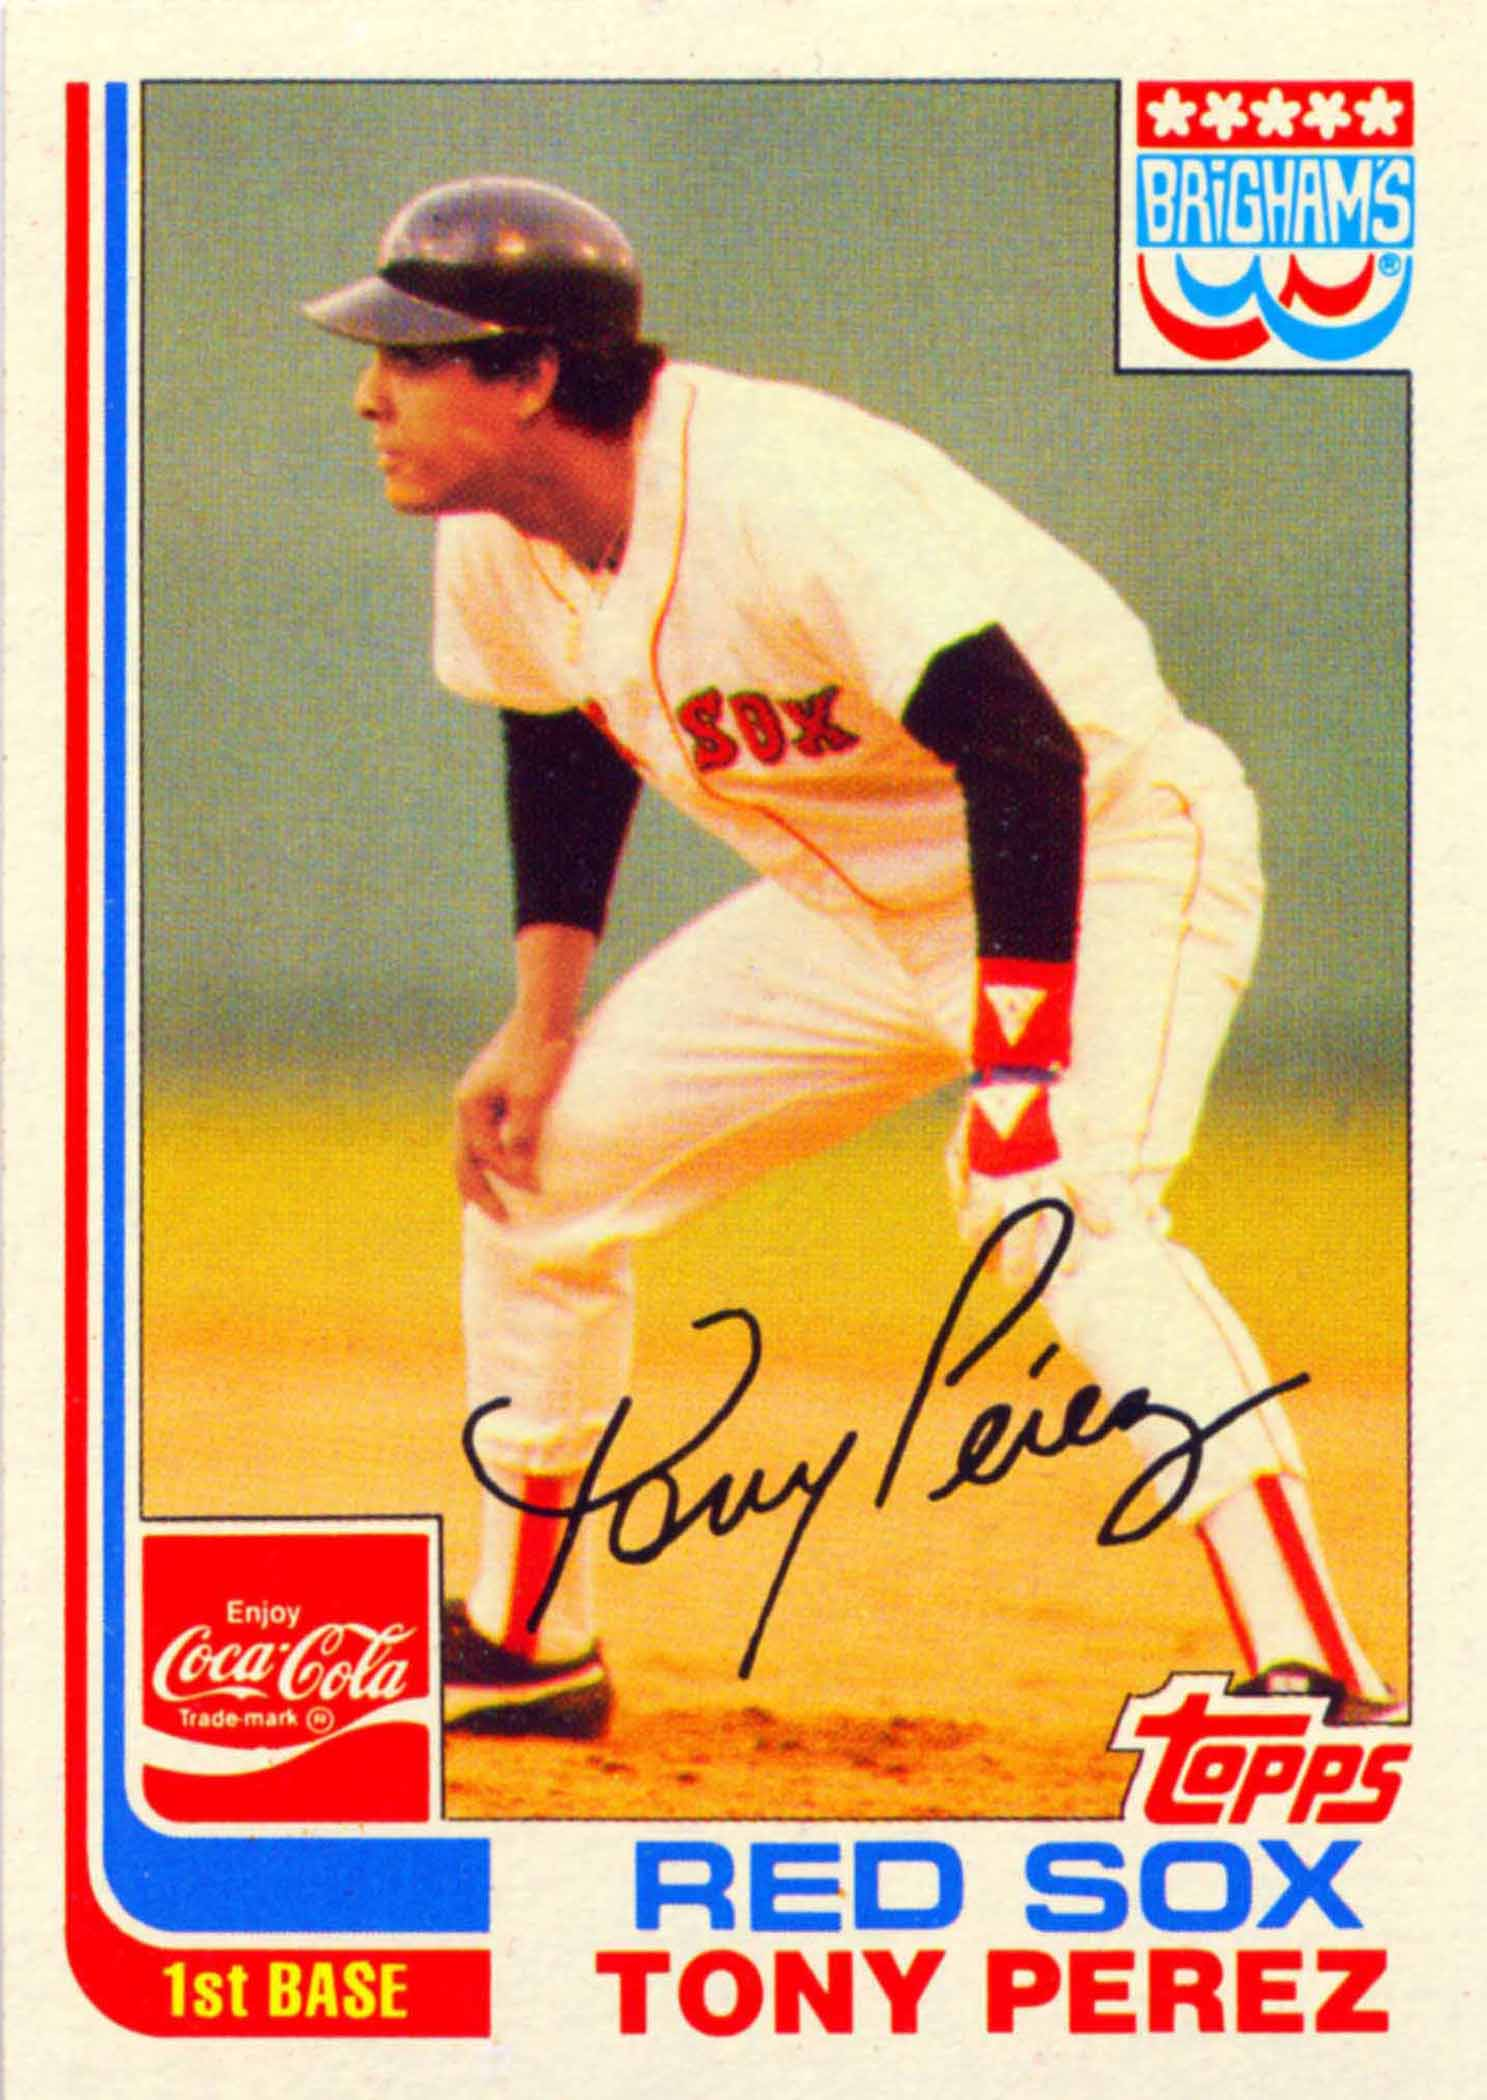 1982 Red Sox Coke